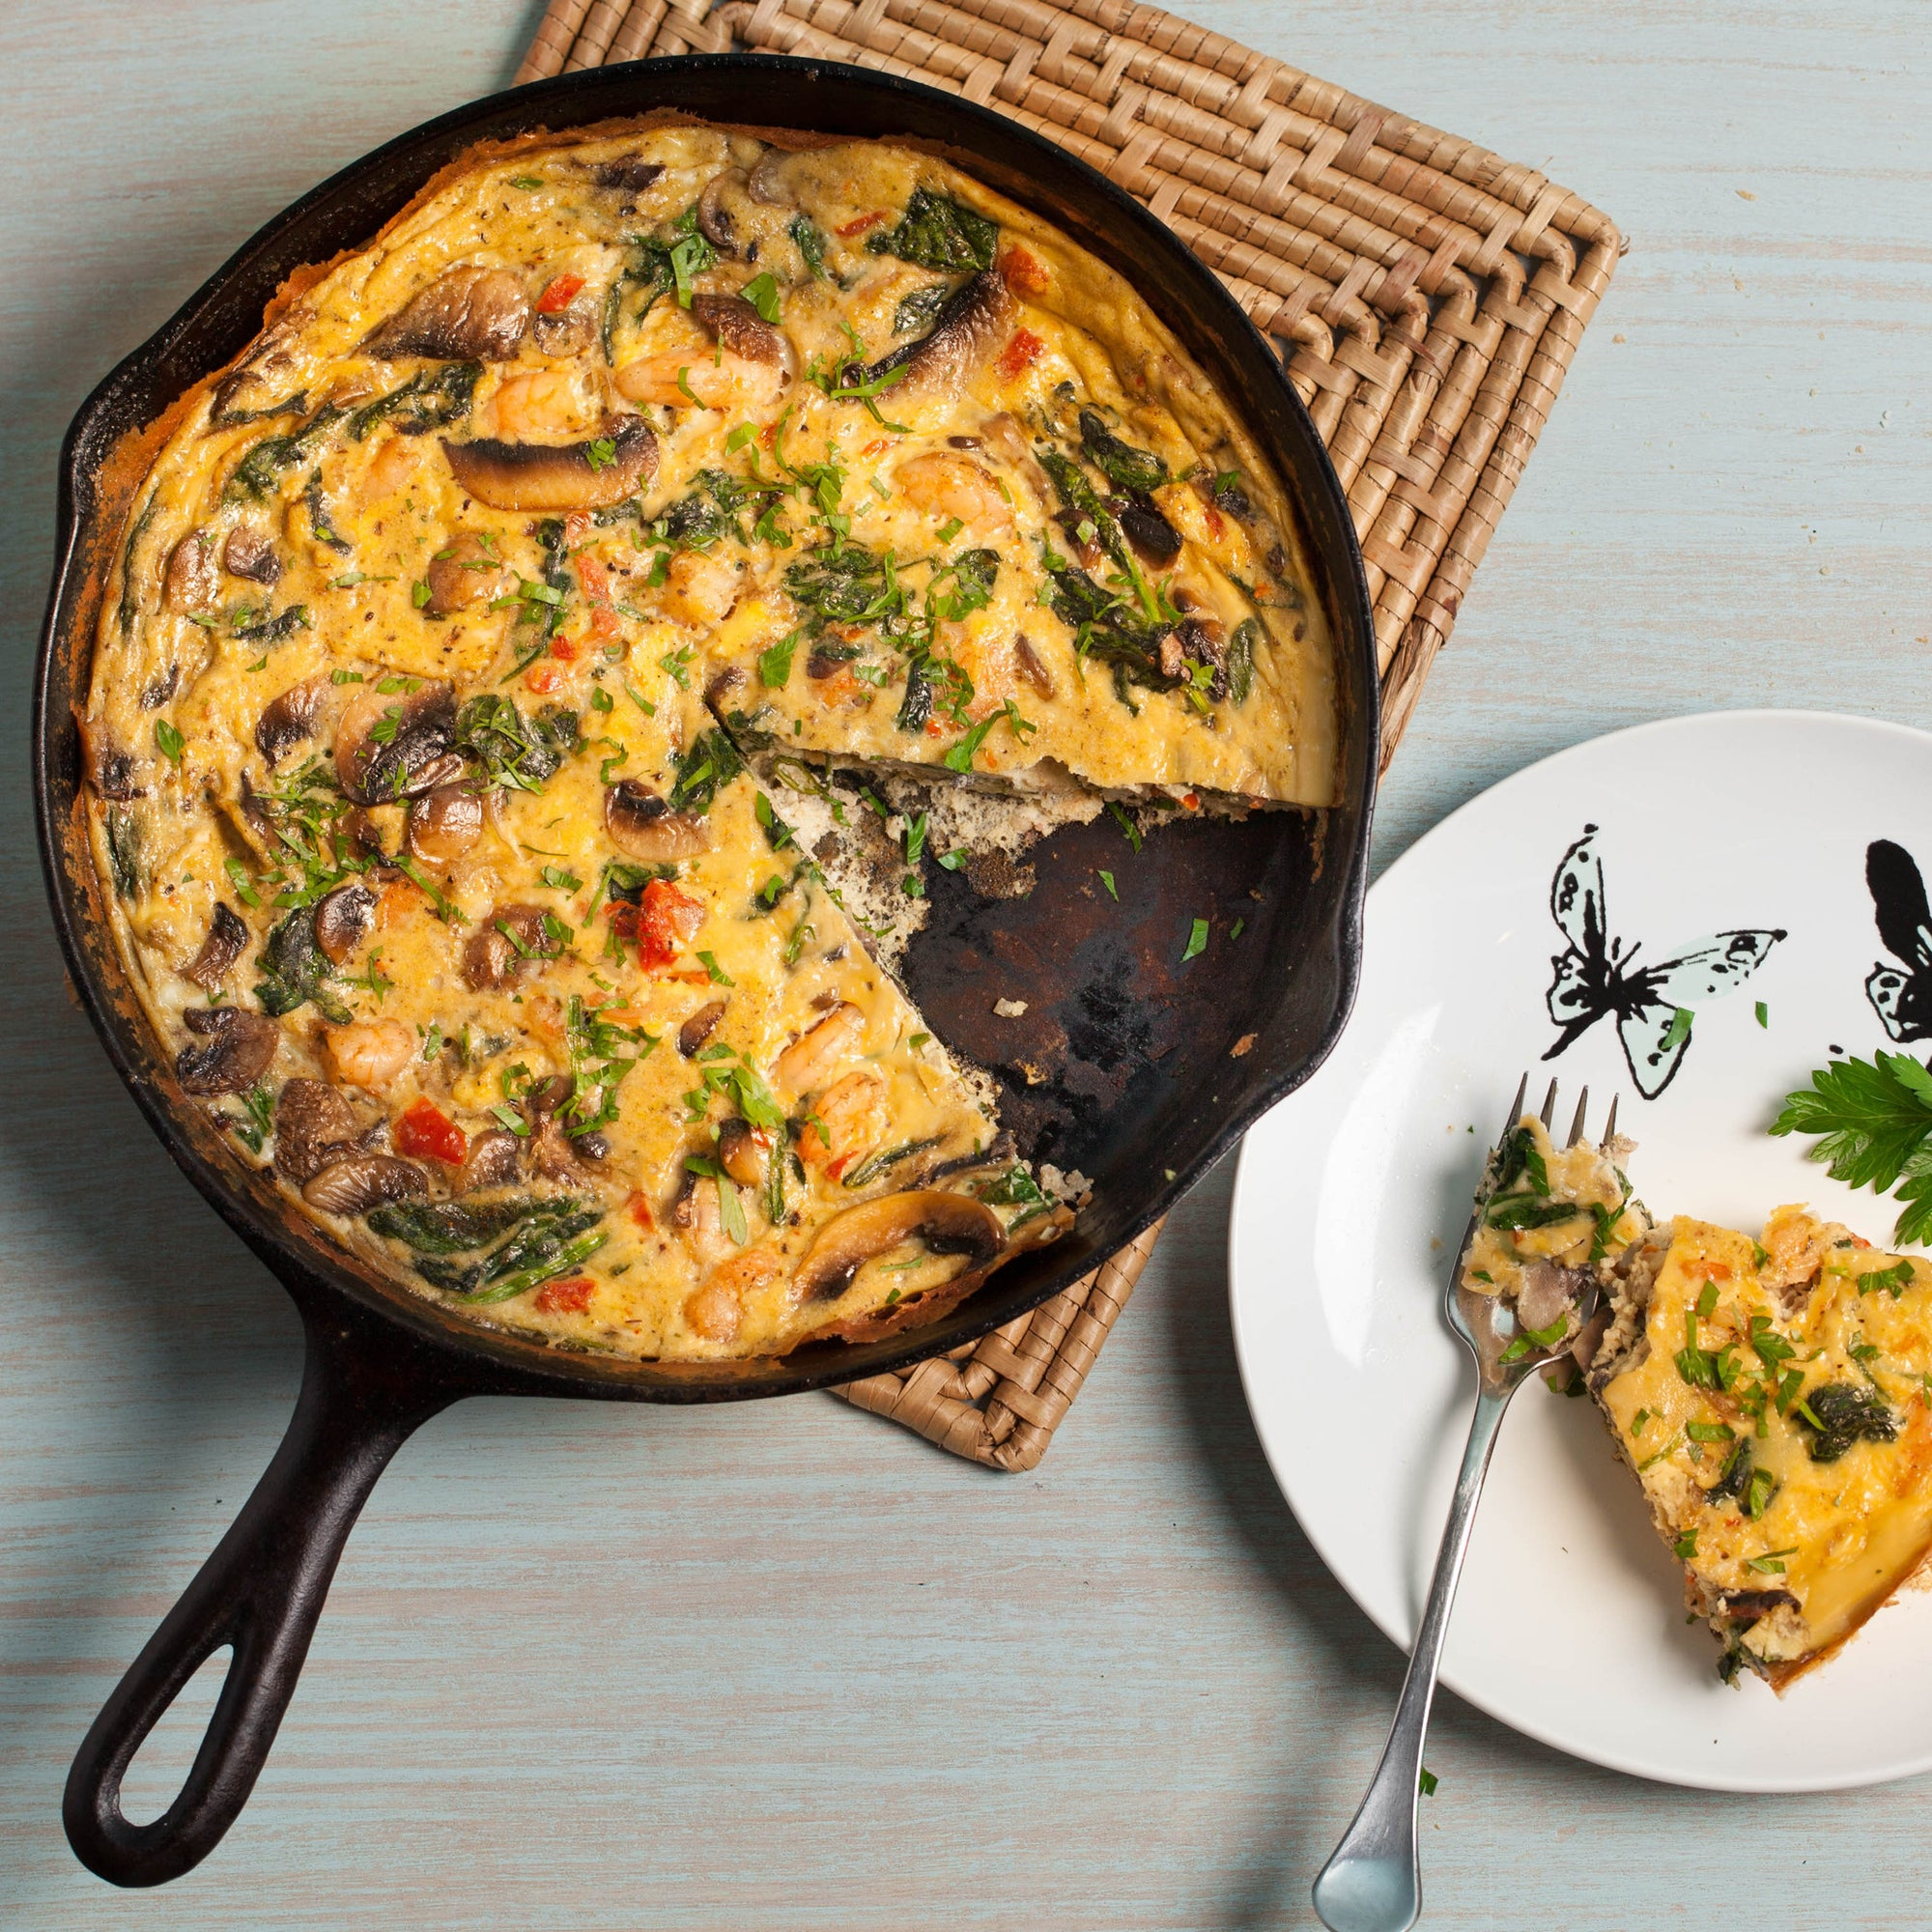 Shrimp, Spinach and Mushroom Frittata